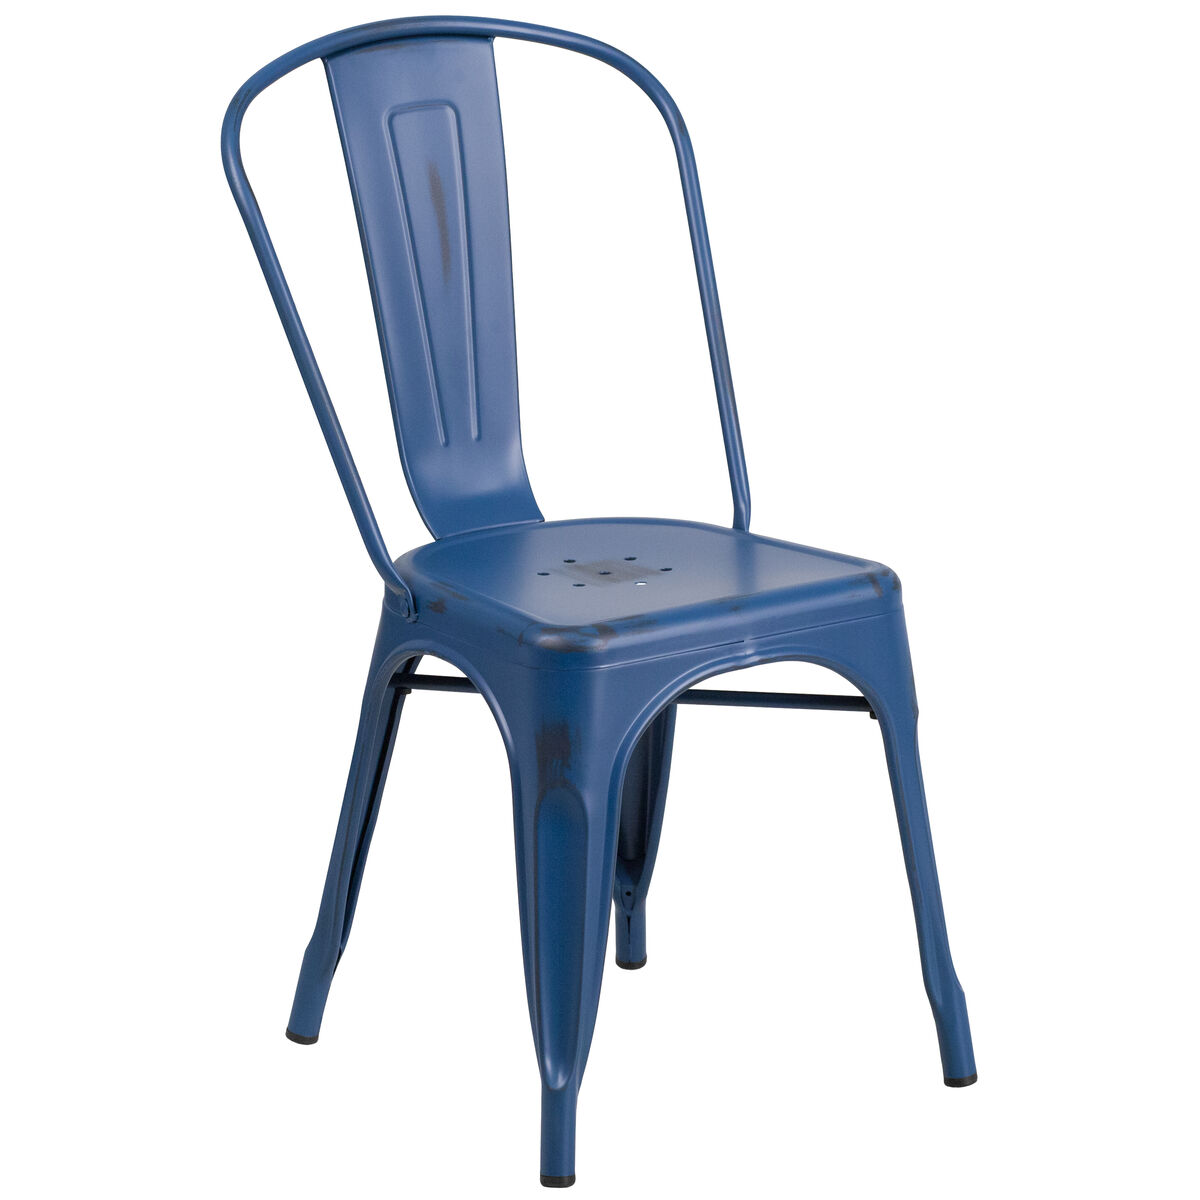 ... Our Distressed Antique Blue Metal Indoor-Outdoor Stackable Chair is on  sale now. - Distressed Blue Metal Chair ET-3534-AB-GG ChurchChairs4Less.com